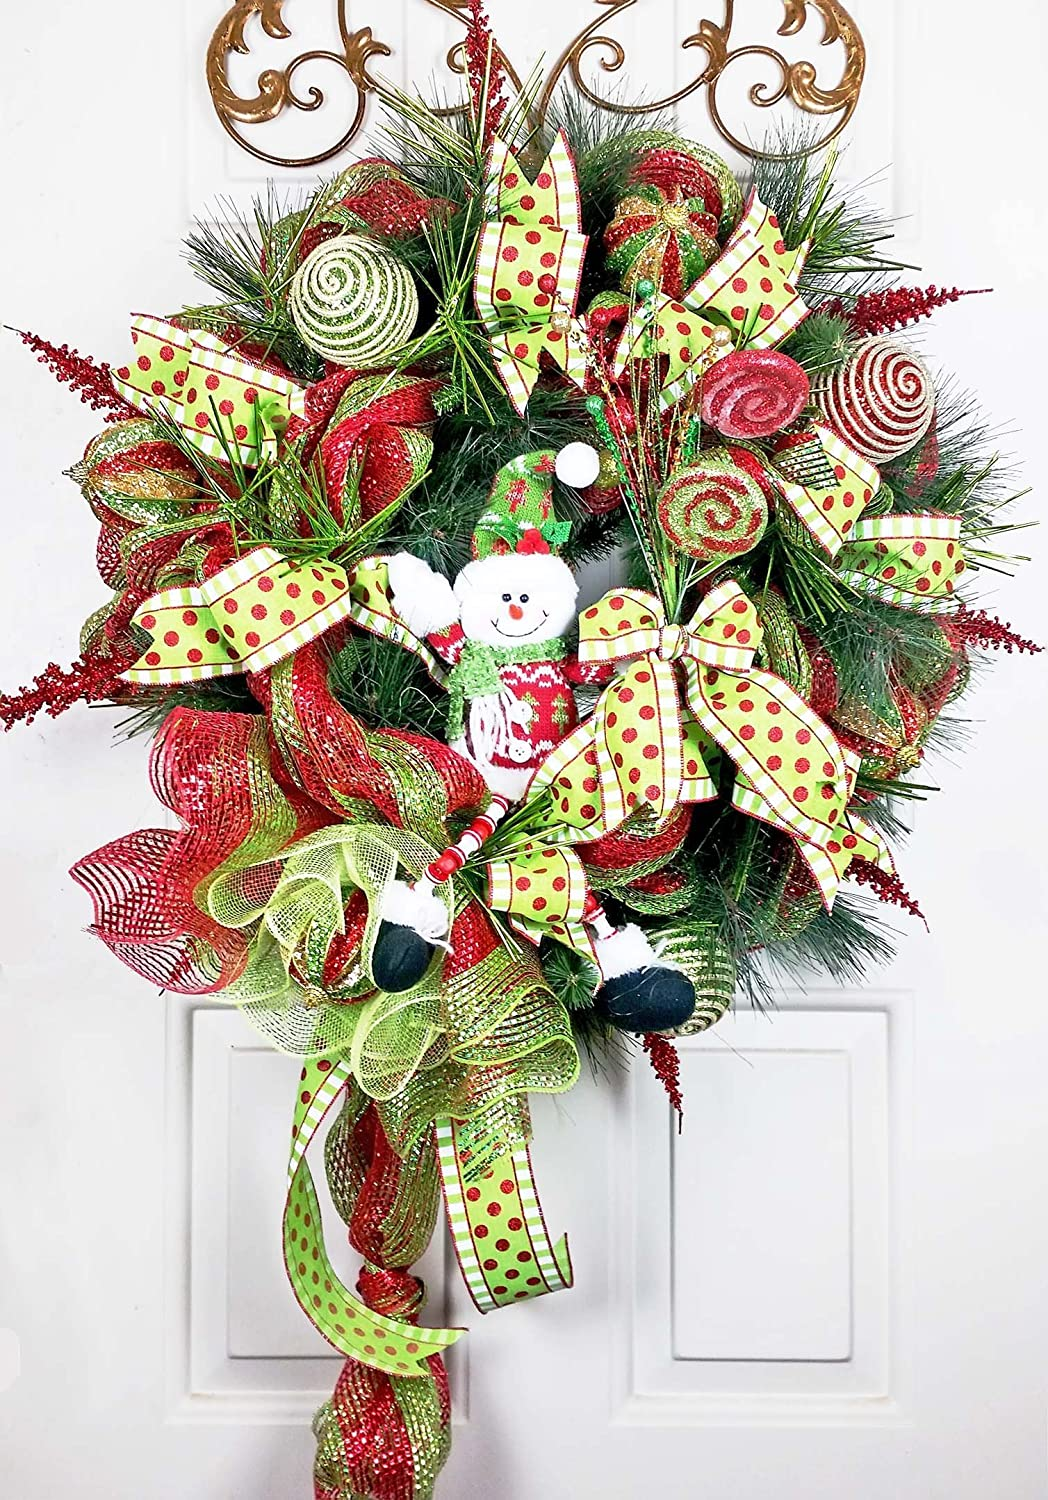 Handmade Christmas Snowman Candy Bouquet Wreath